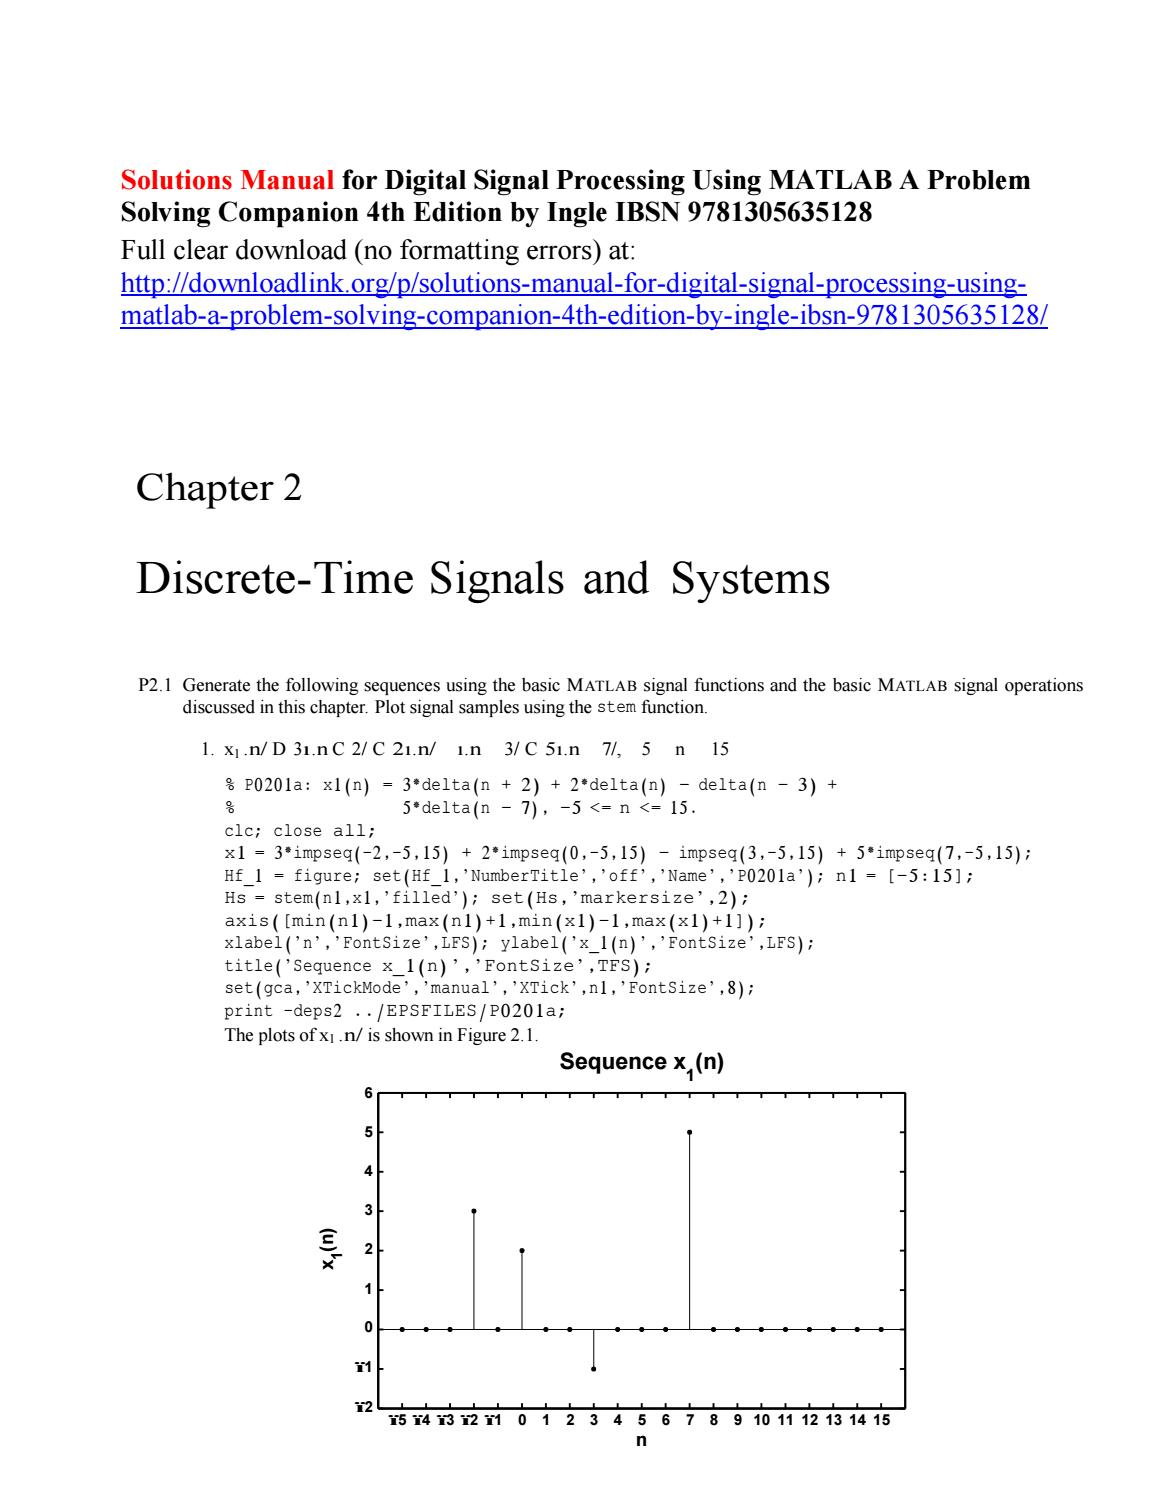 Solutions manual for digital signal processing using matlab a problem  solving companion 4th edition by Kang486 - issuu